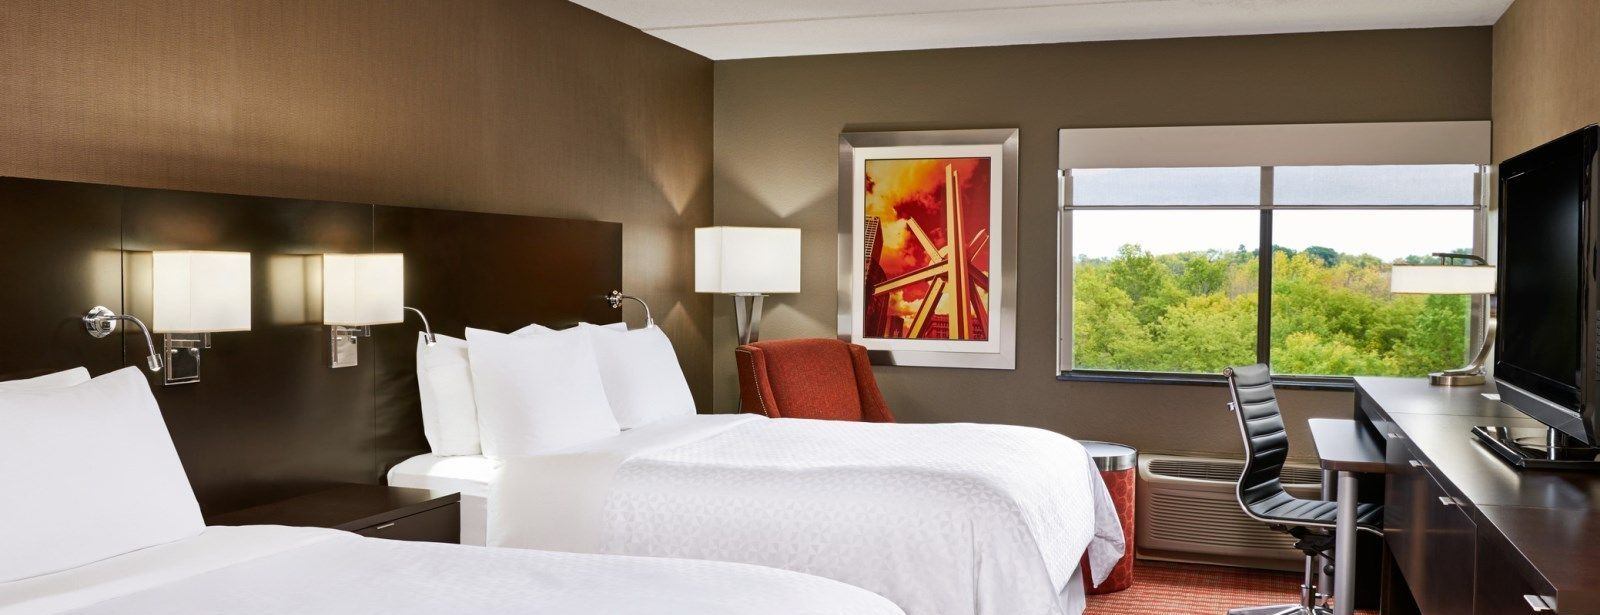 Milwaukee Accommodations - Double Queen Room